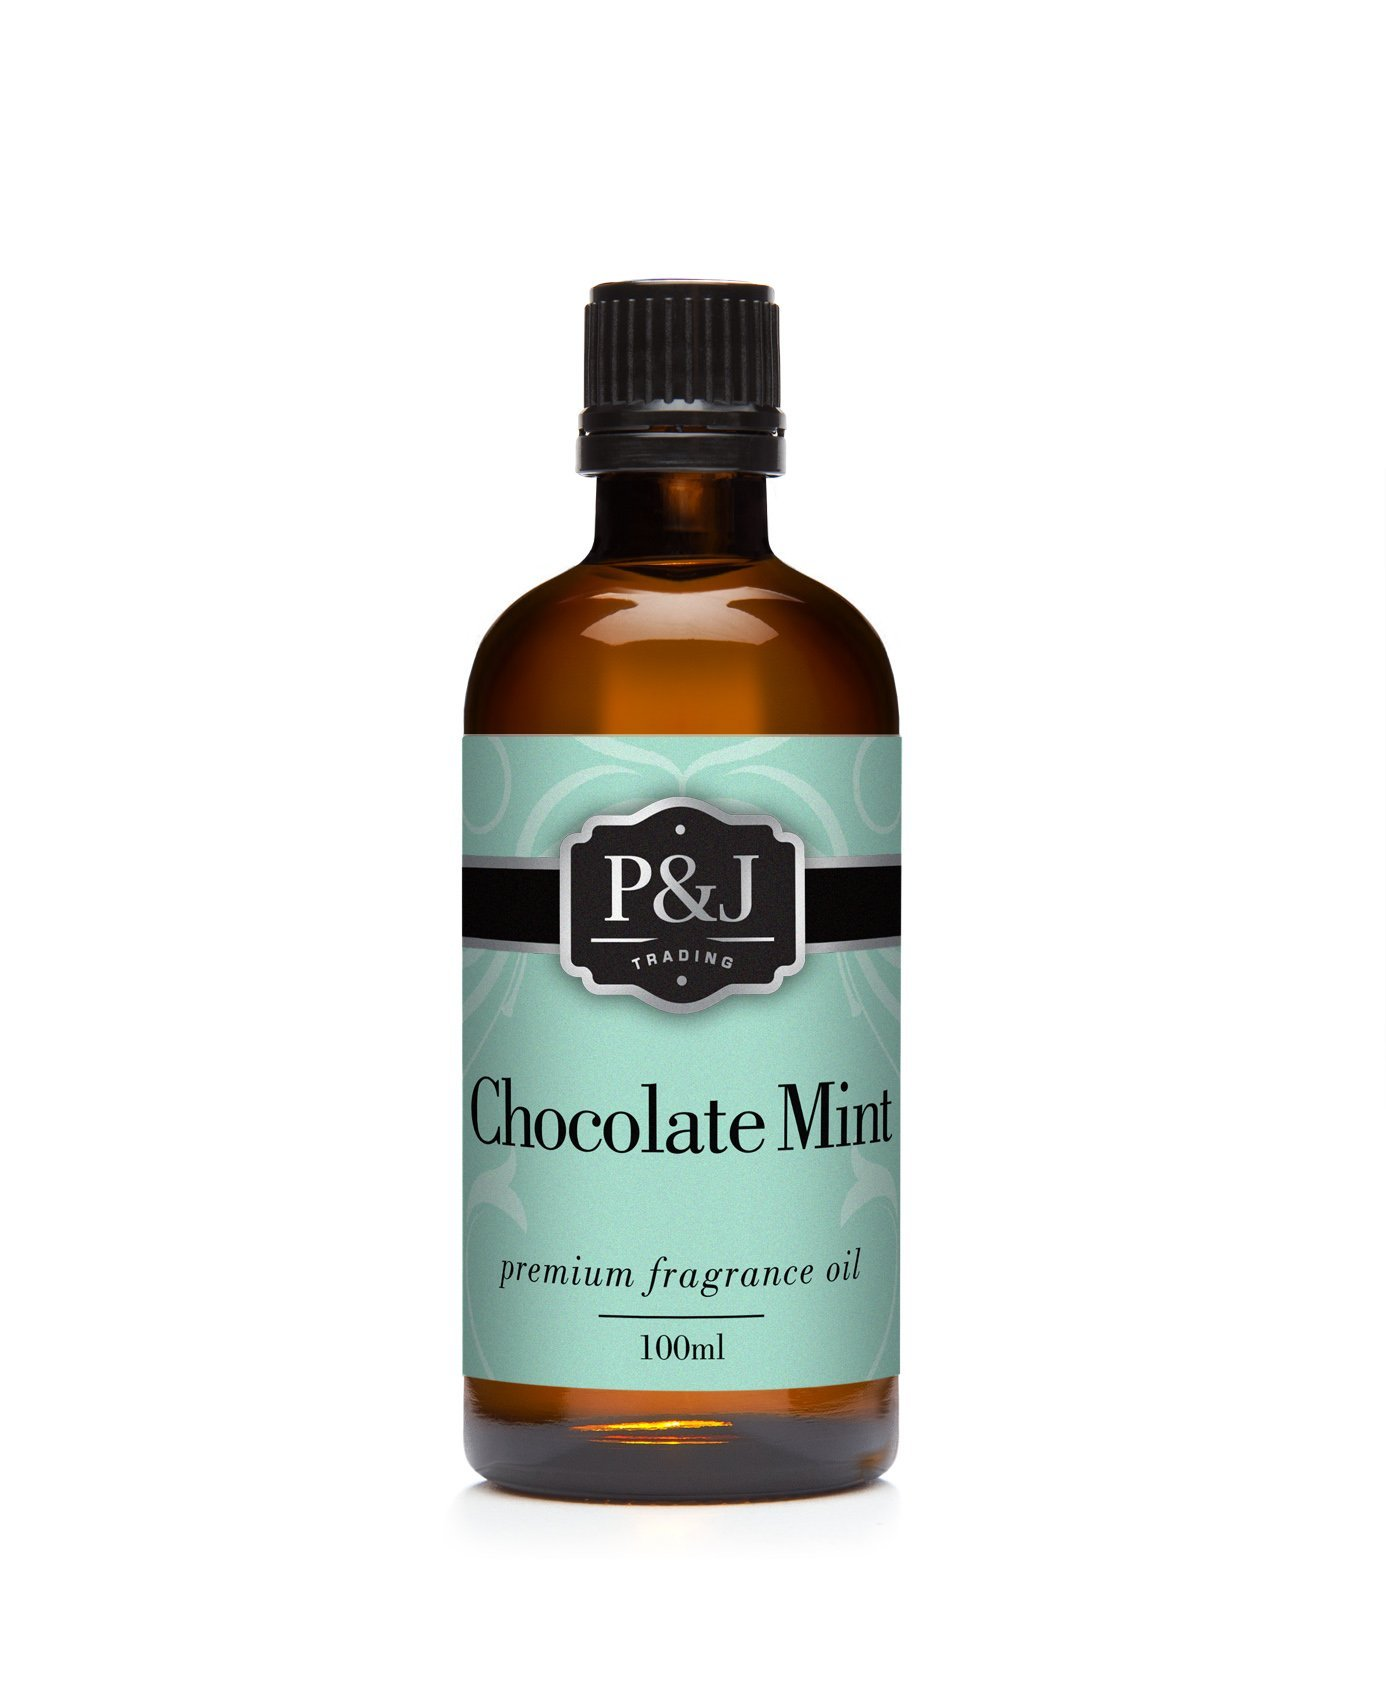 Chocolate Mint Fragrance Oil - Premium Grade Scented Oil - 100ml/3.3oz